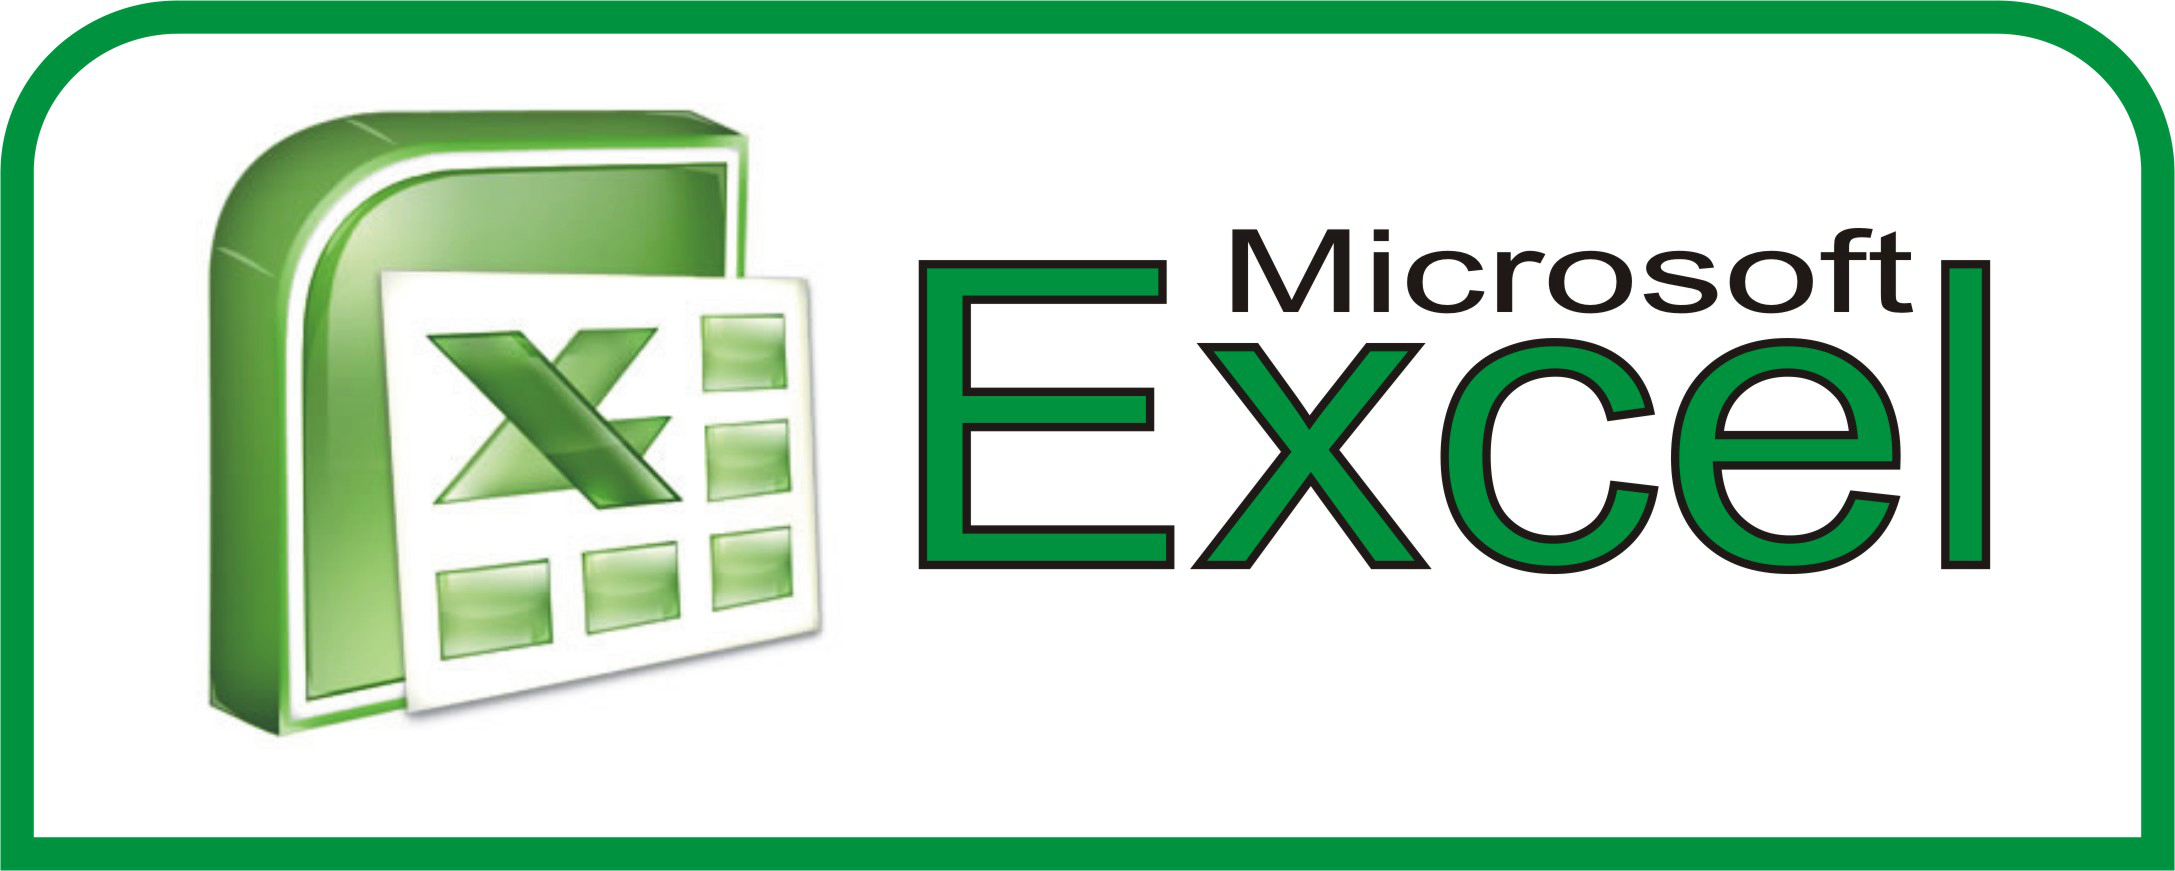 Ediblewildsus  Prepossessing  Excel Shortcuts You Probably Didnt Know About  Techdissected With Gorgeous Copying Pdf To Excel Besides Excel Merge Worksheets Into One Furthermore Scripting Excel With Enchanting Efficient Frontier Excel Template Also Grouping Rows In Excel  In Addition Make A Box And Whisker Plot In Excel And Excel Customer Service Number As Well As Excel Check For Null Additionally Simulations In Excel From Techdissectedcom With Ediblewildsus  Gorgeous  Excel Shortcuts You Probably Didnt Know About  Techdissected With Enchanting Copying Pdf To Excel Besides Excel Merge Worksheets Into One Furthermore Scripting Excel And Prepossessing Efficient Frontier Excel Template Also Grouping Rows In Excel  In Addition Make A Box And Whisker Plot In Excel From Techdissectedcom